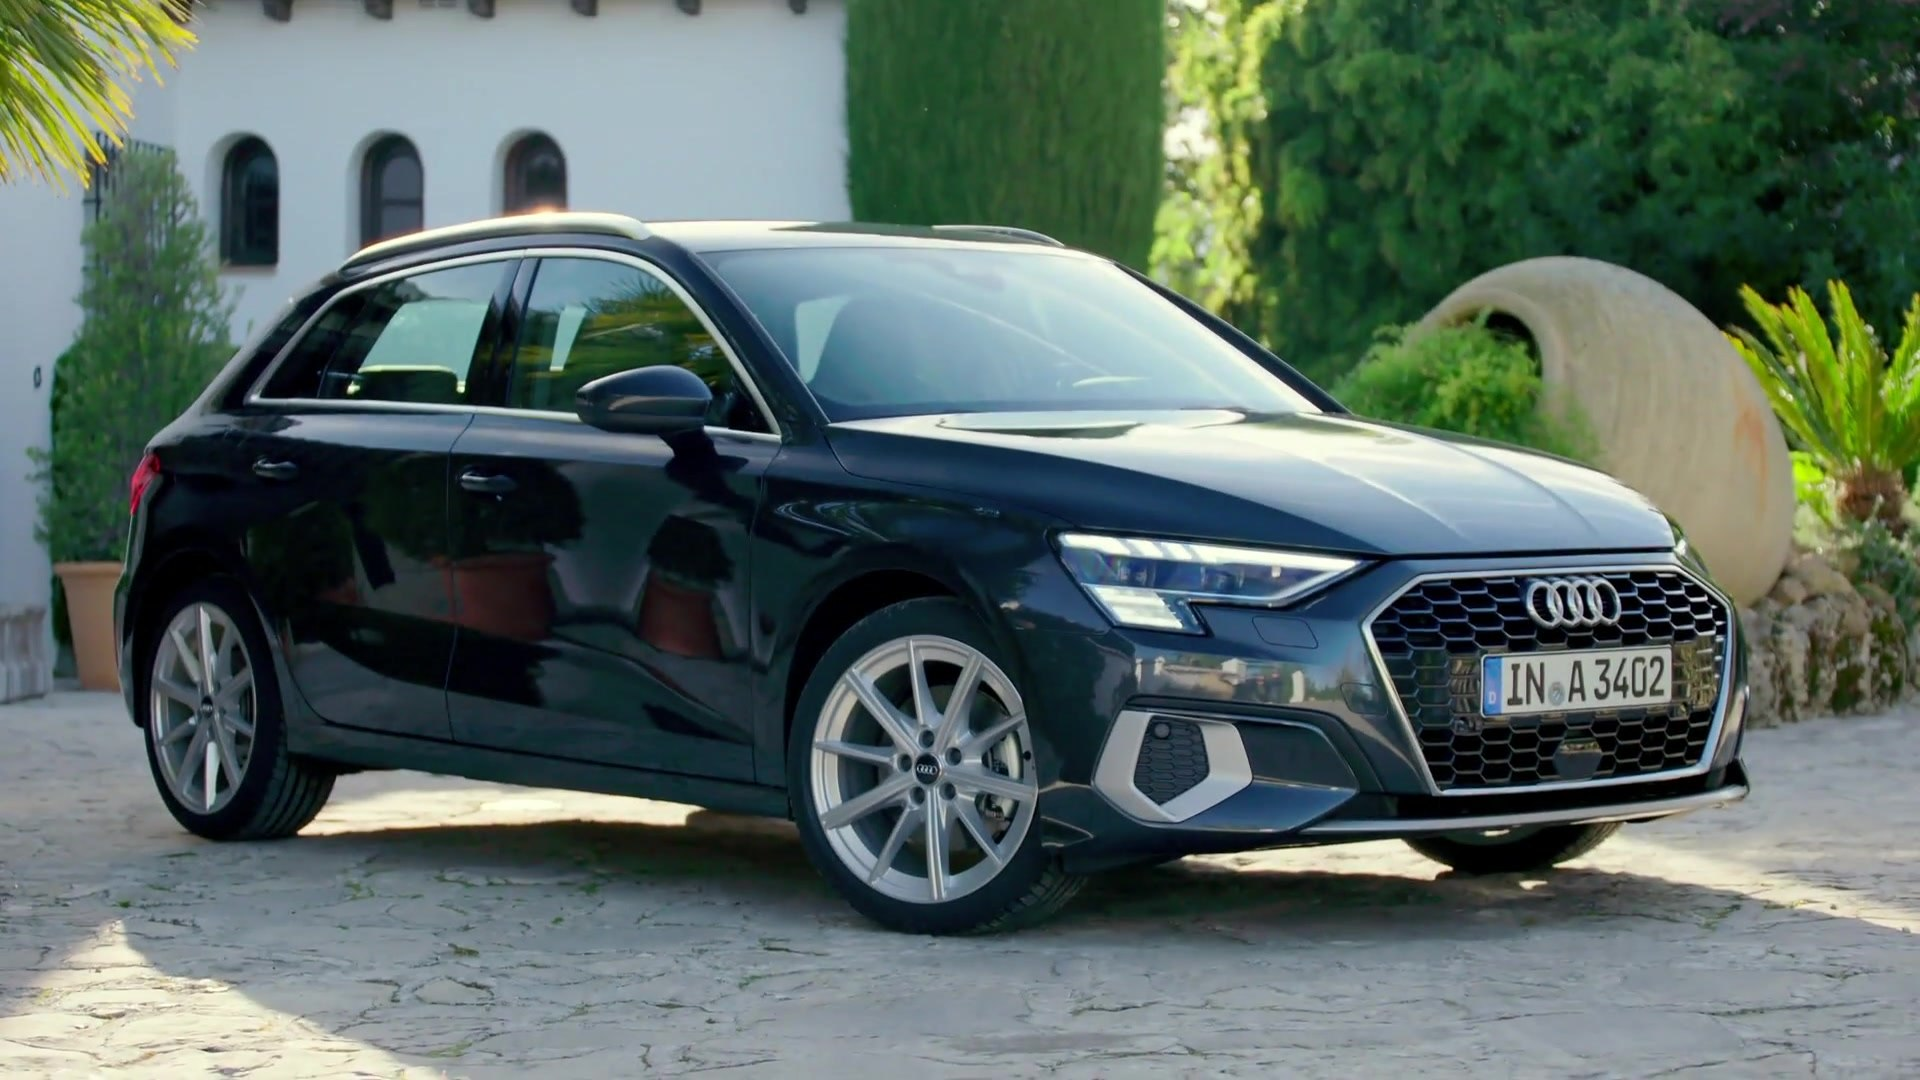 the new audi a3 sportback exterior design in manhattan grey video dailymotion the new audi a3 sportback exterior design in manhattan grey